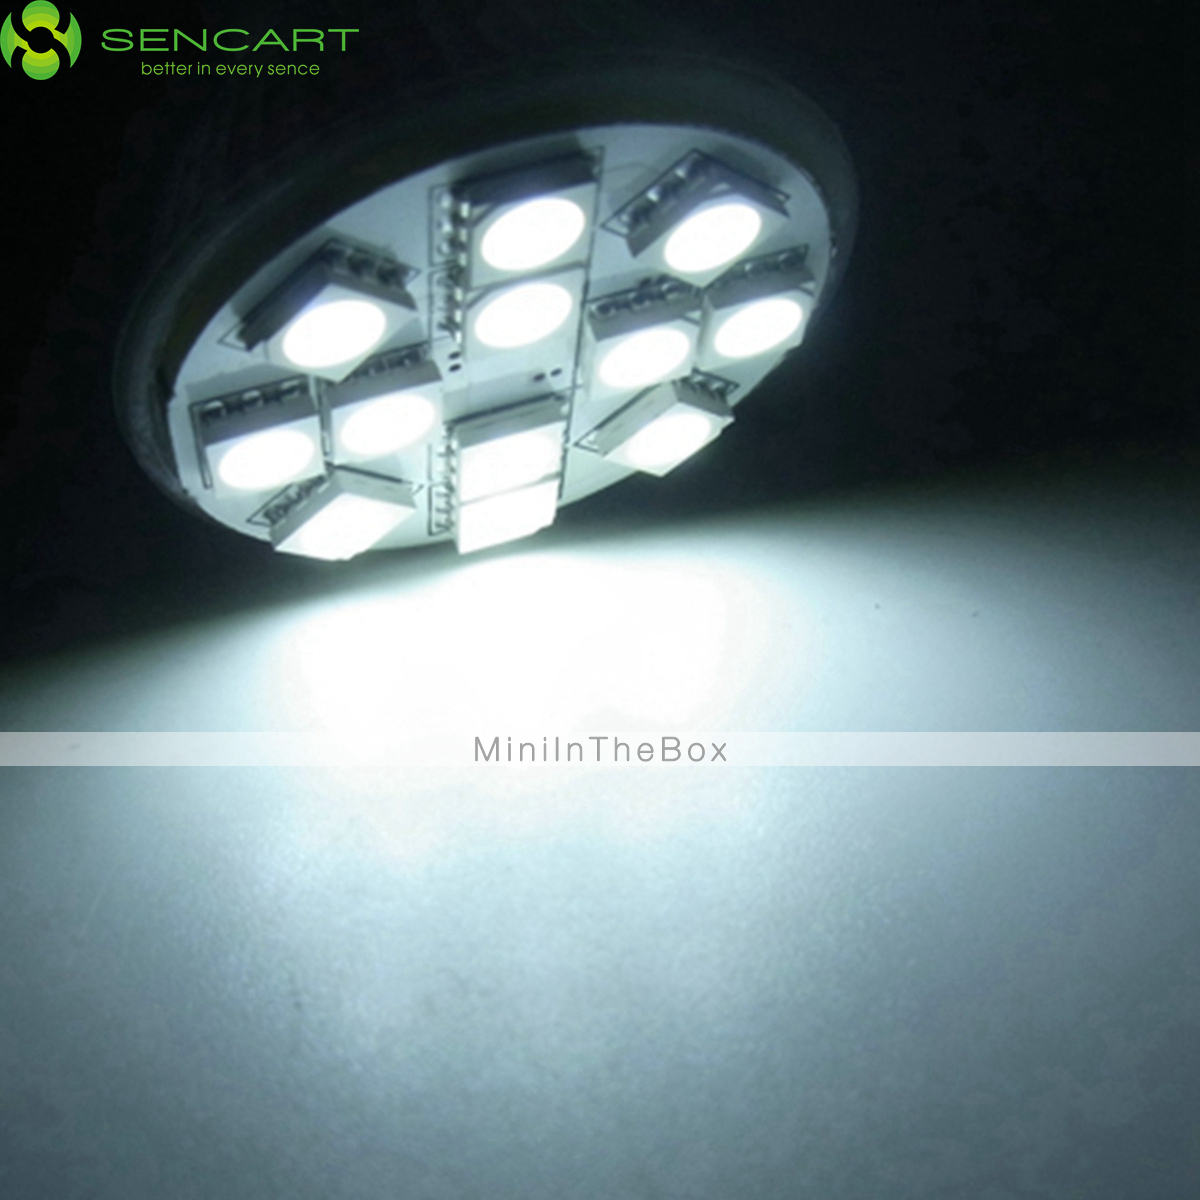 Led Gu4 Dimmbar 3w Gu4 Mr11 Led Spot Lampen Mr11 12 Smd 5050 160 180 Lm